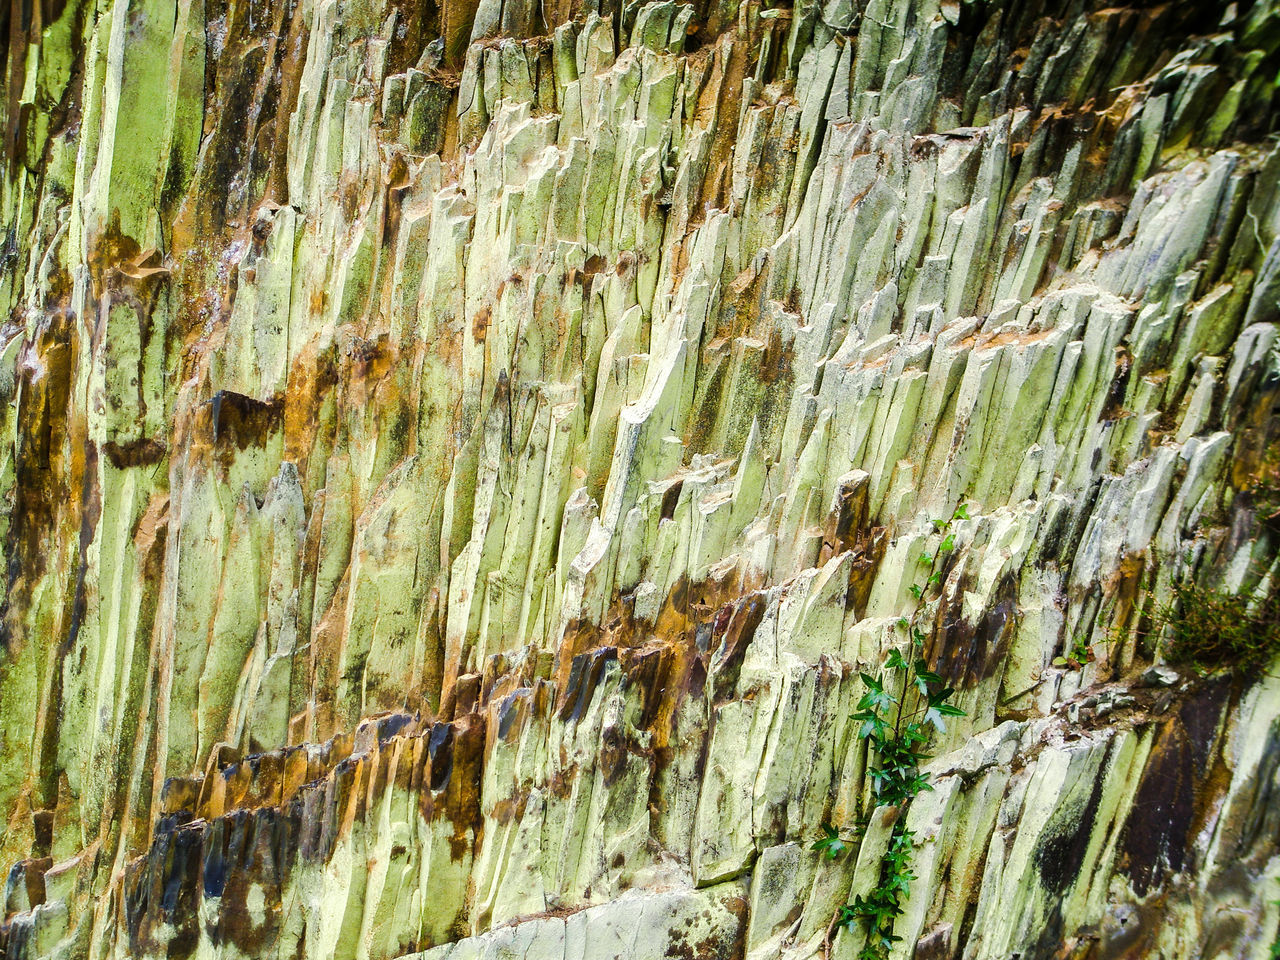 Green Rocks Backgrounds Full Frame No People Nature Day Close-up Outdoors Ivy Rock Rock Formation Wales Slate Moss Lychen Fractured Cracks Metamorphic Rock Face Cliff Green Color Britain Uk